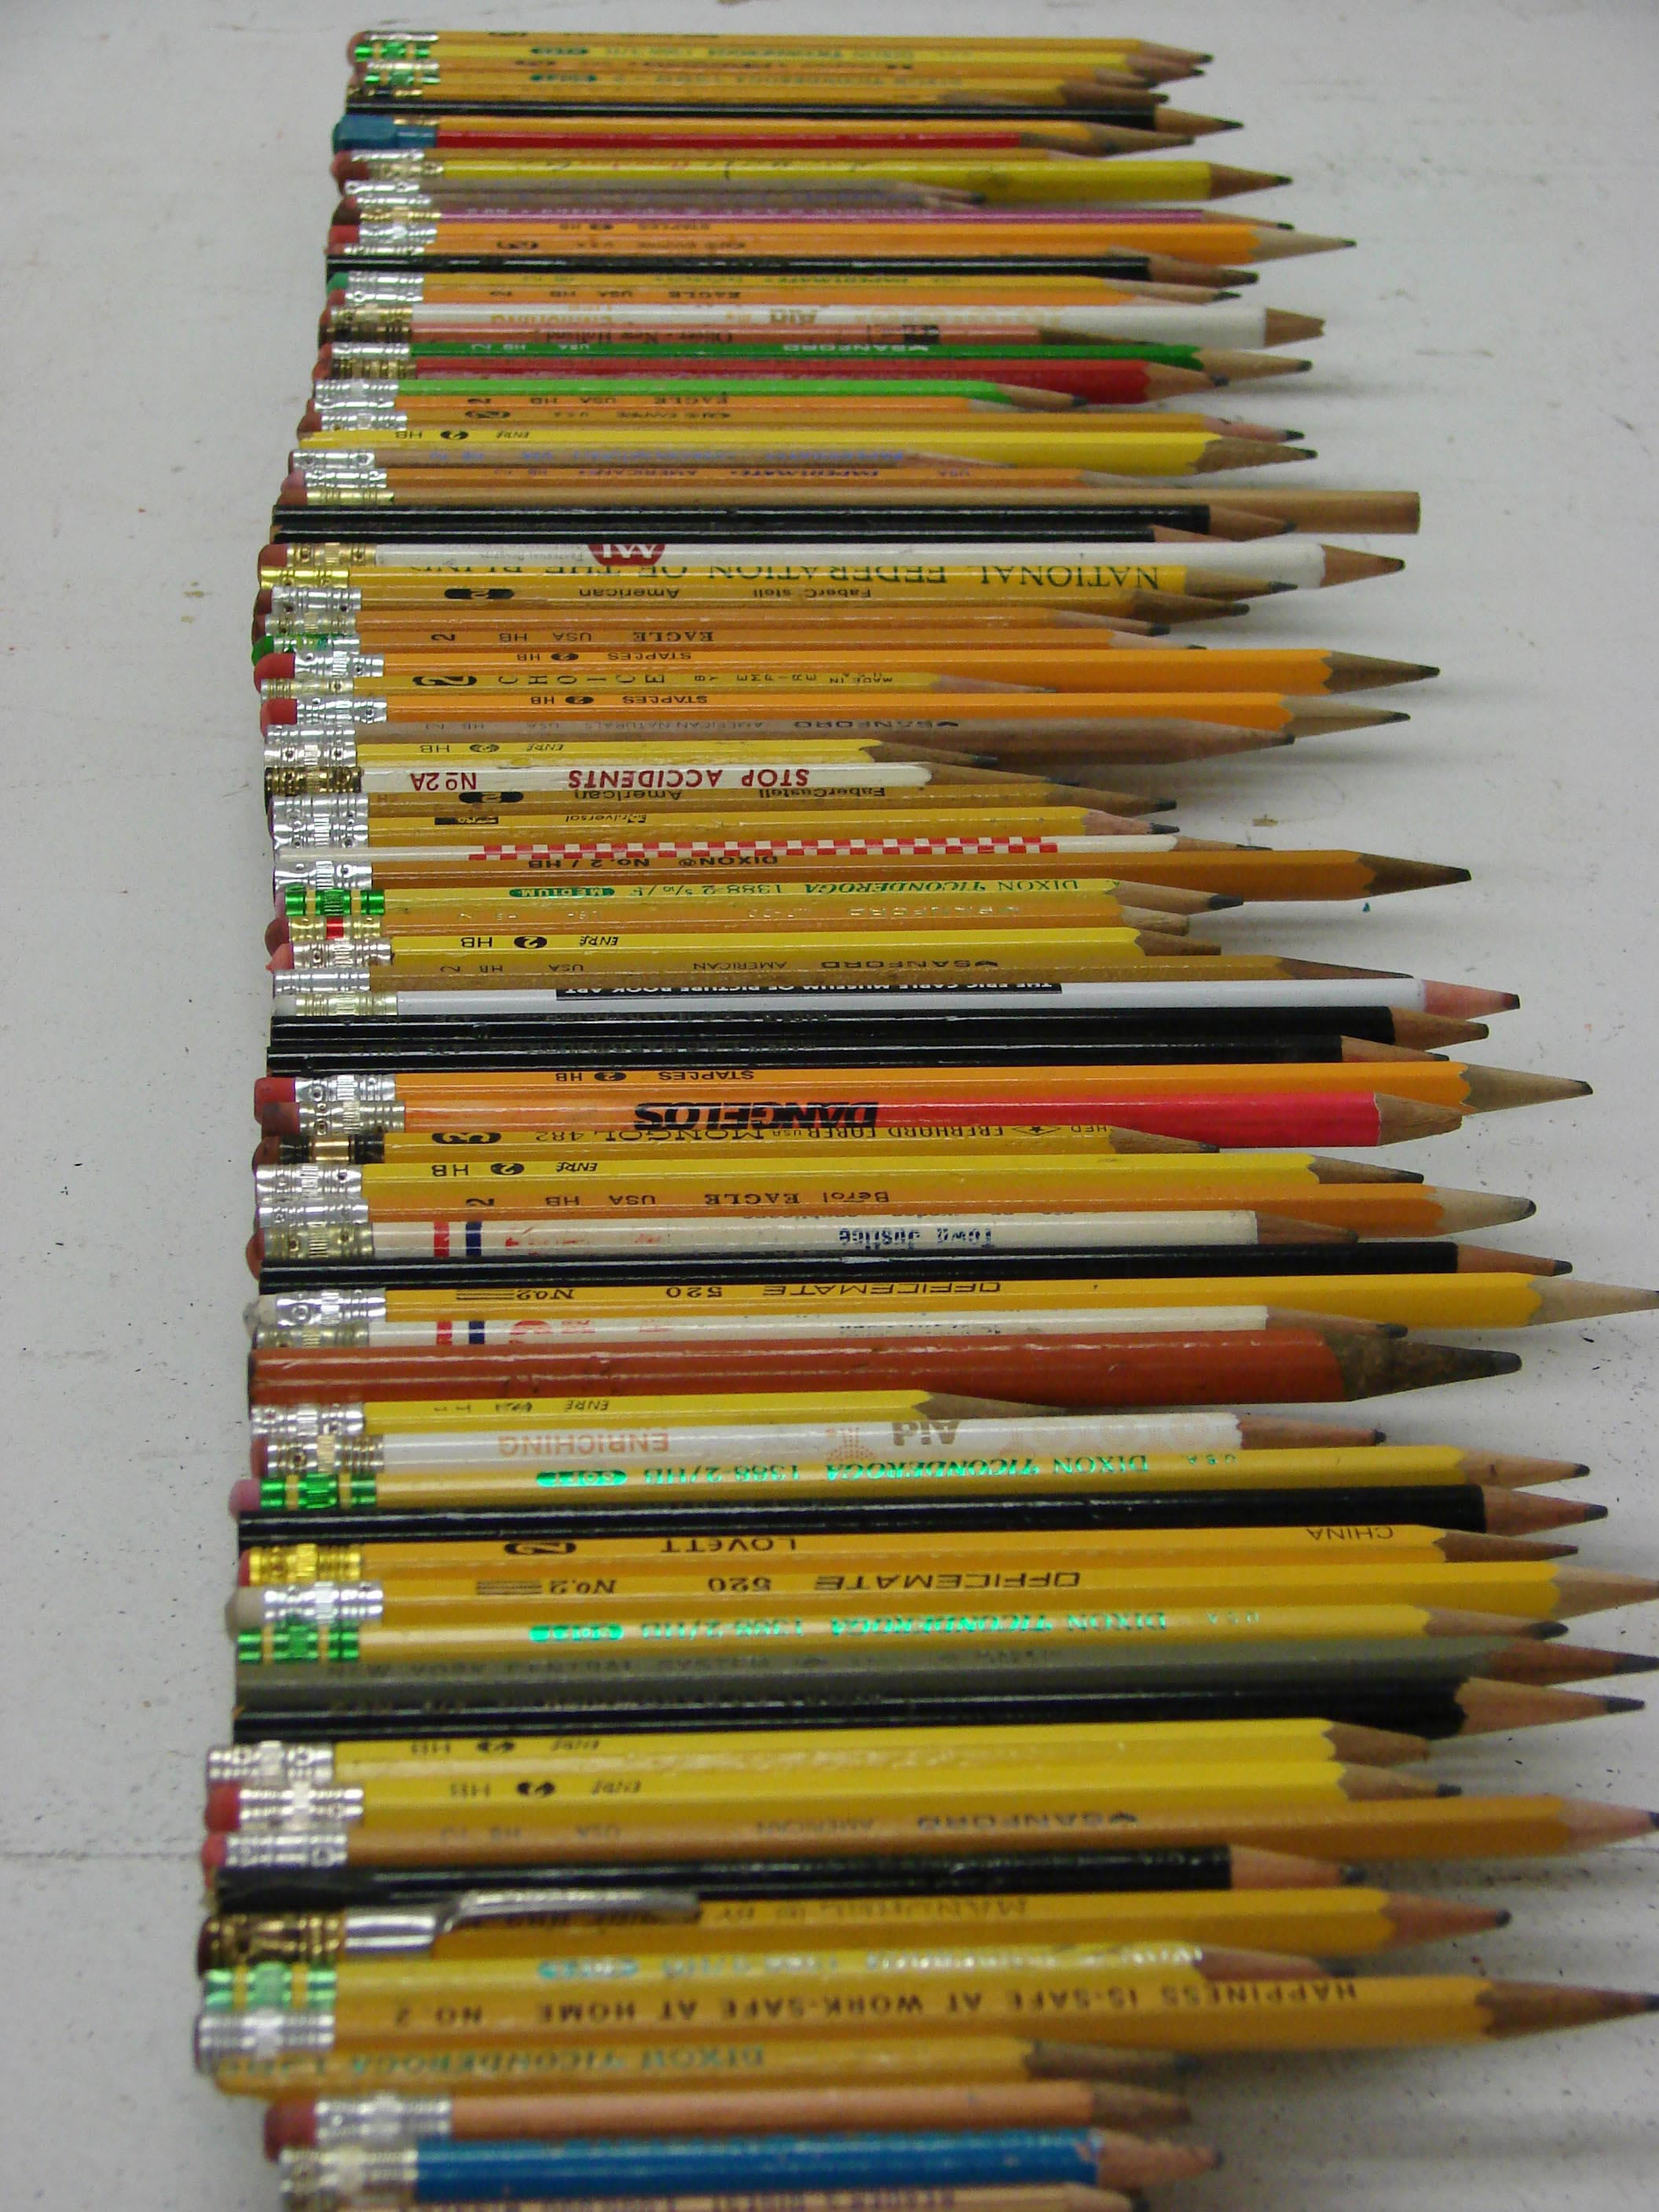 The Pennsylvania Center for the Book - Pencils with Erasers